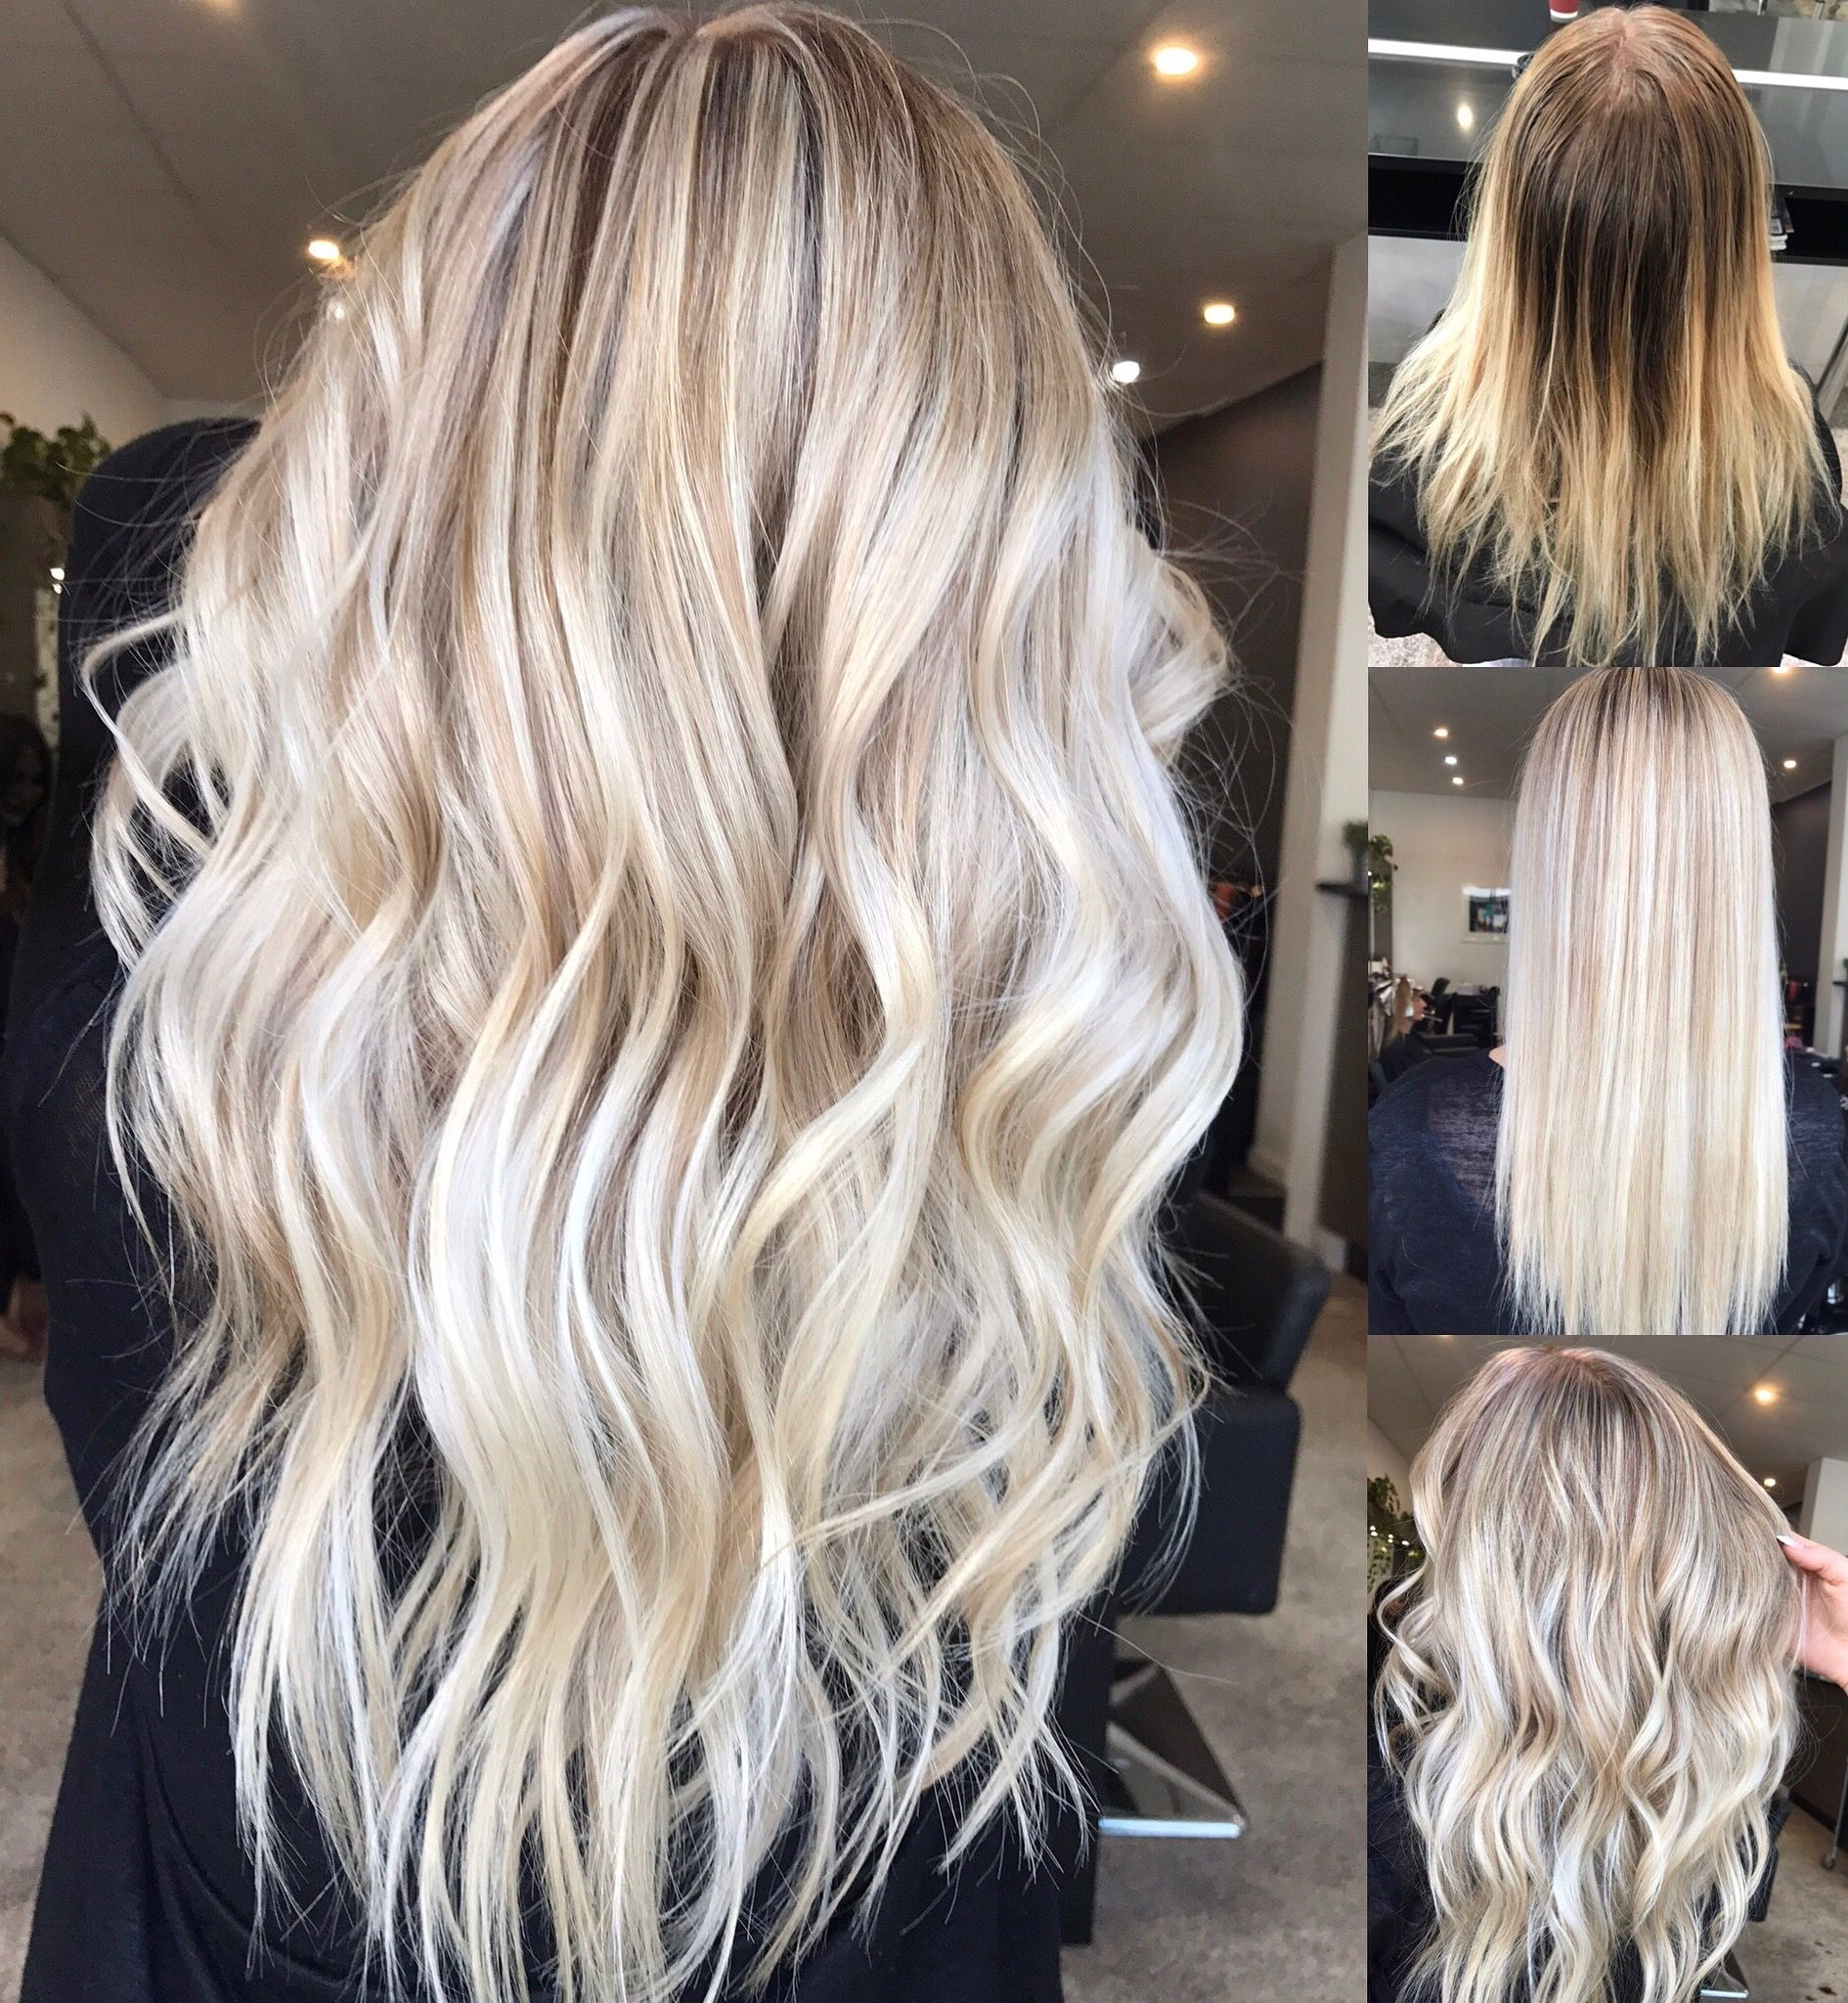 Instagram @kaitlinjadehairartistry Hair ️ Lived In Hair Regarding Most Up To Date Golden Blonde Balayage On Long Curls Hairstyles (View 5 of 20)